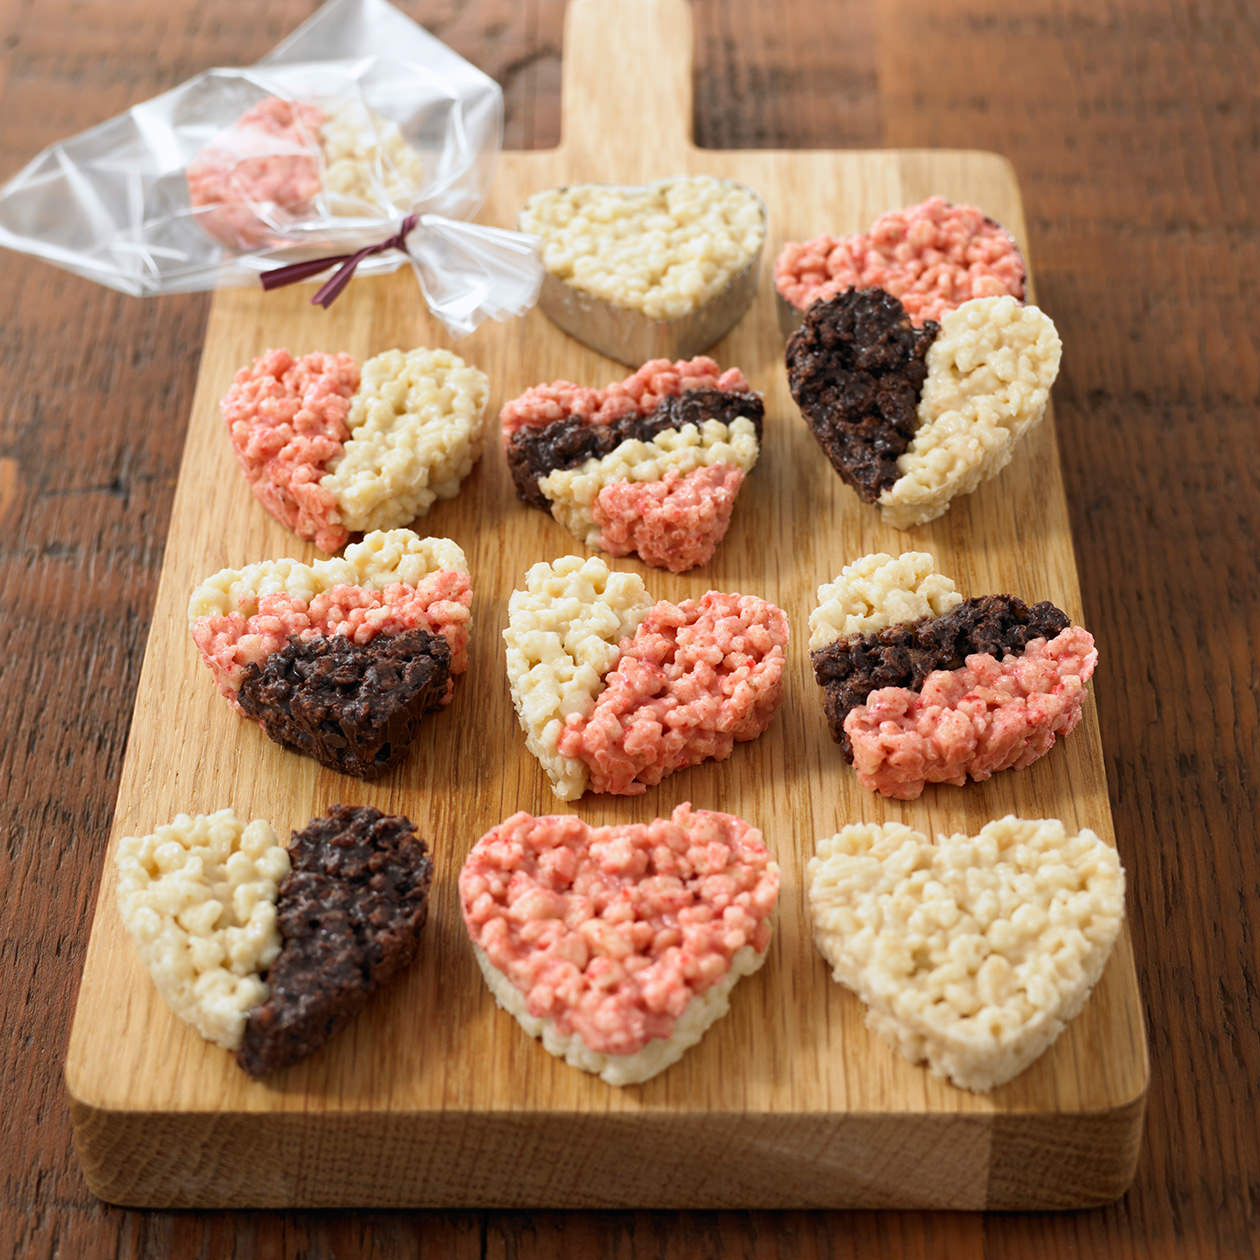 Handmade Heart-shaped Crunch Chocolate Kit